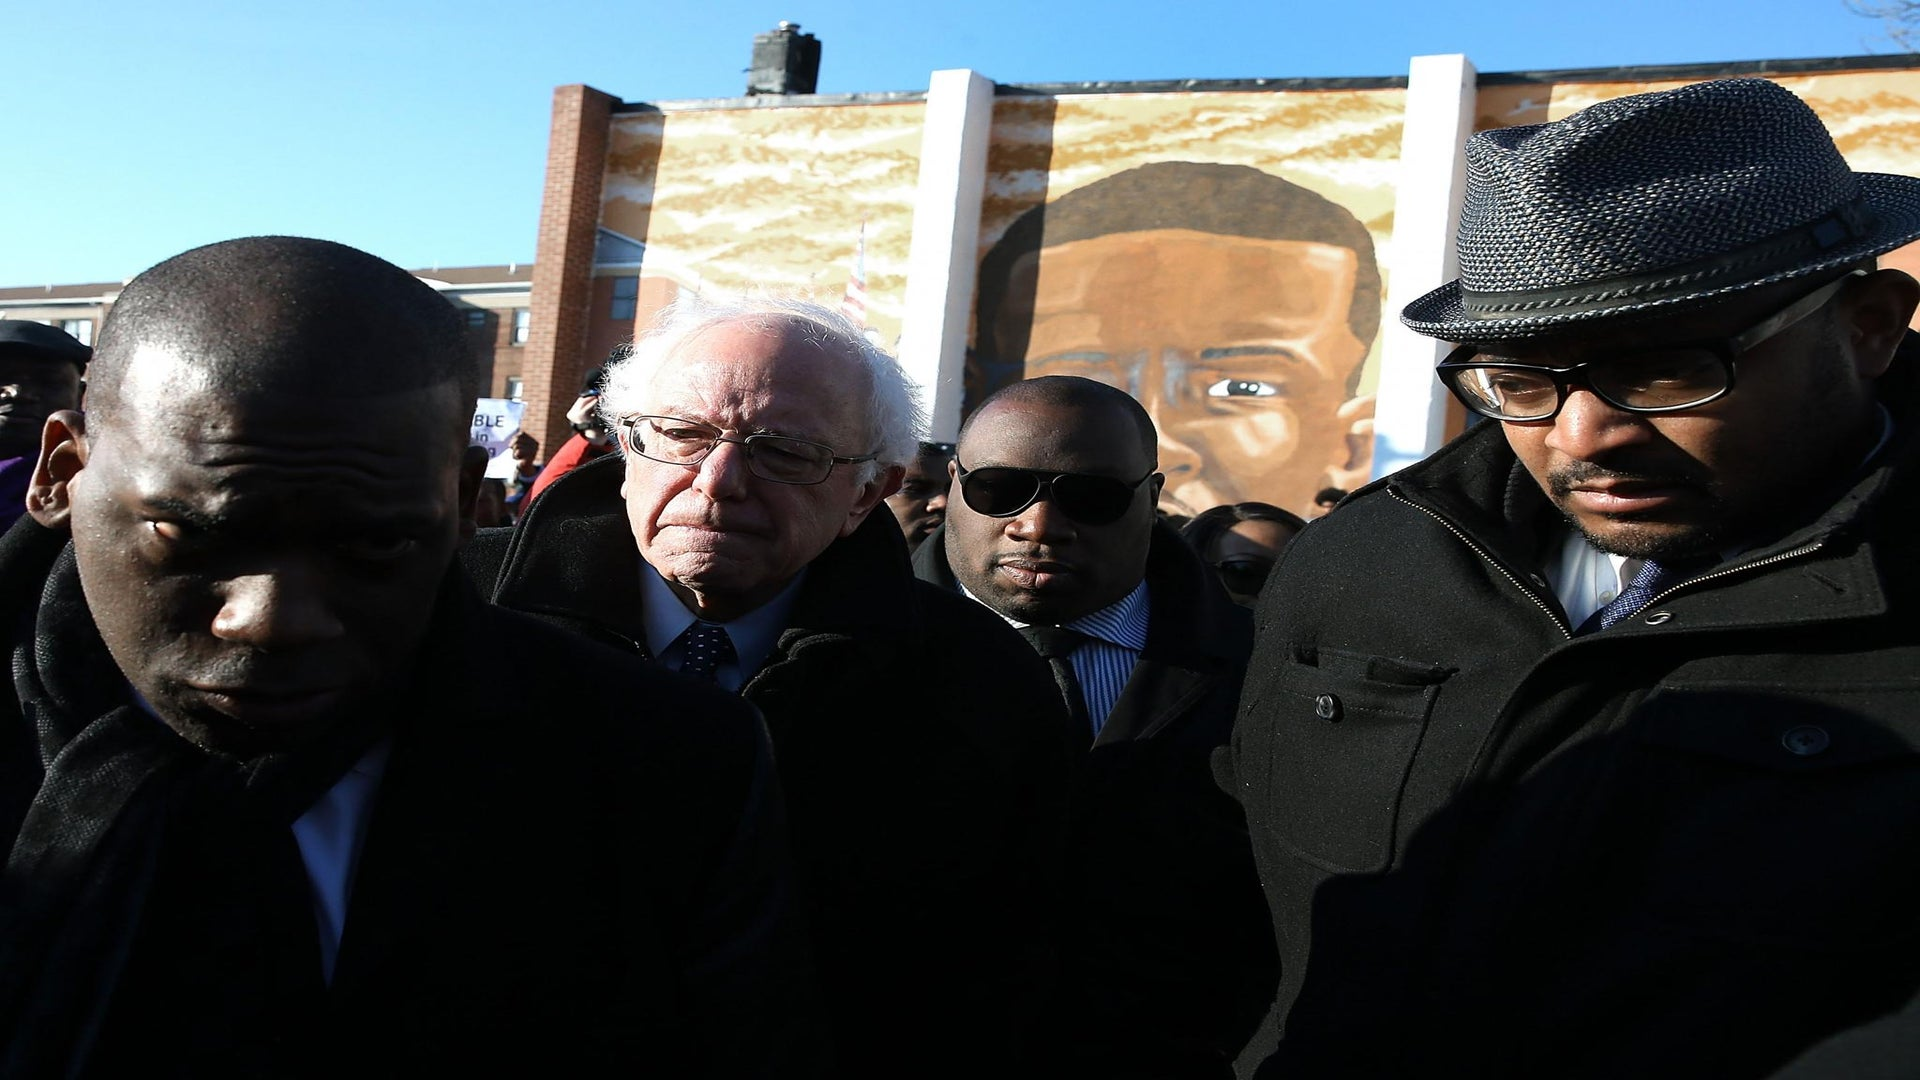 Bernie Sanders On Sandra Bland: 'She Would Be Alive Today If She Were a White Woman'